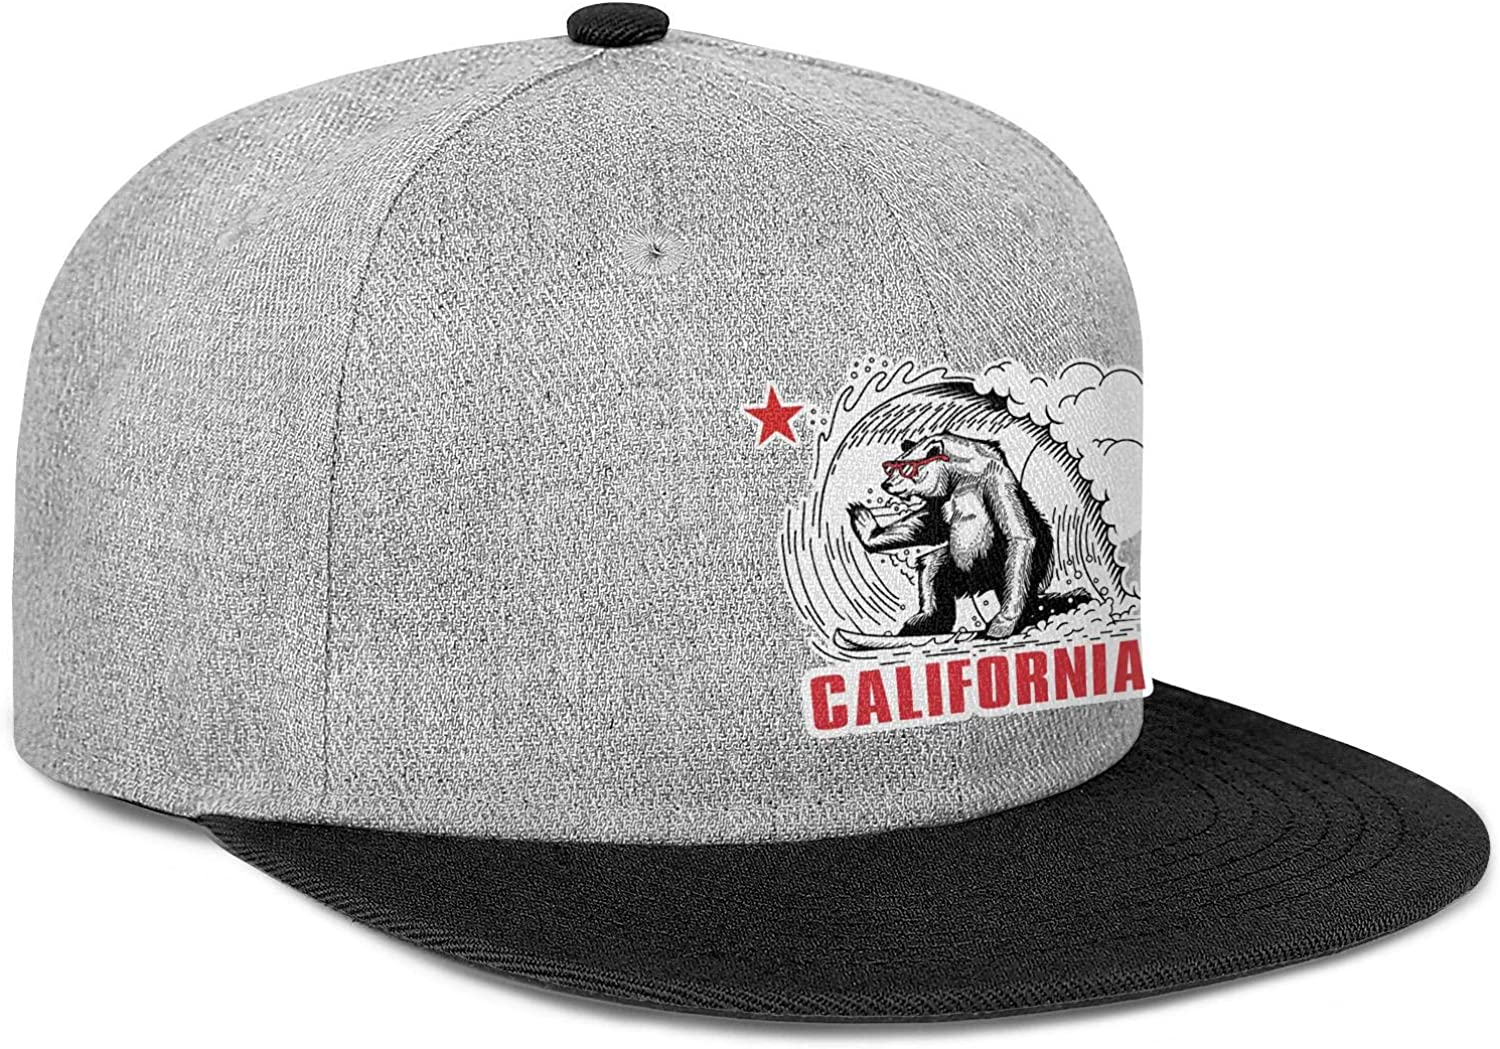 FYFYOK Mens Women Dad Hats California Bear Flag Snapback Adjustable Caps